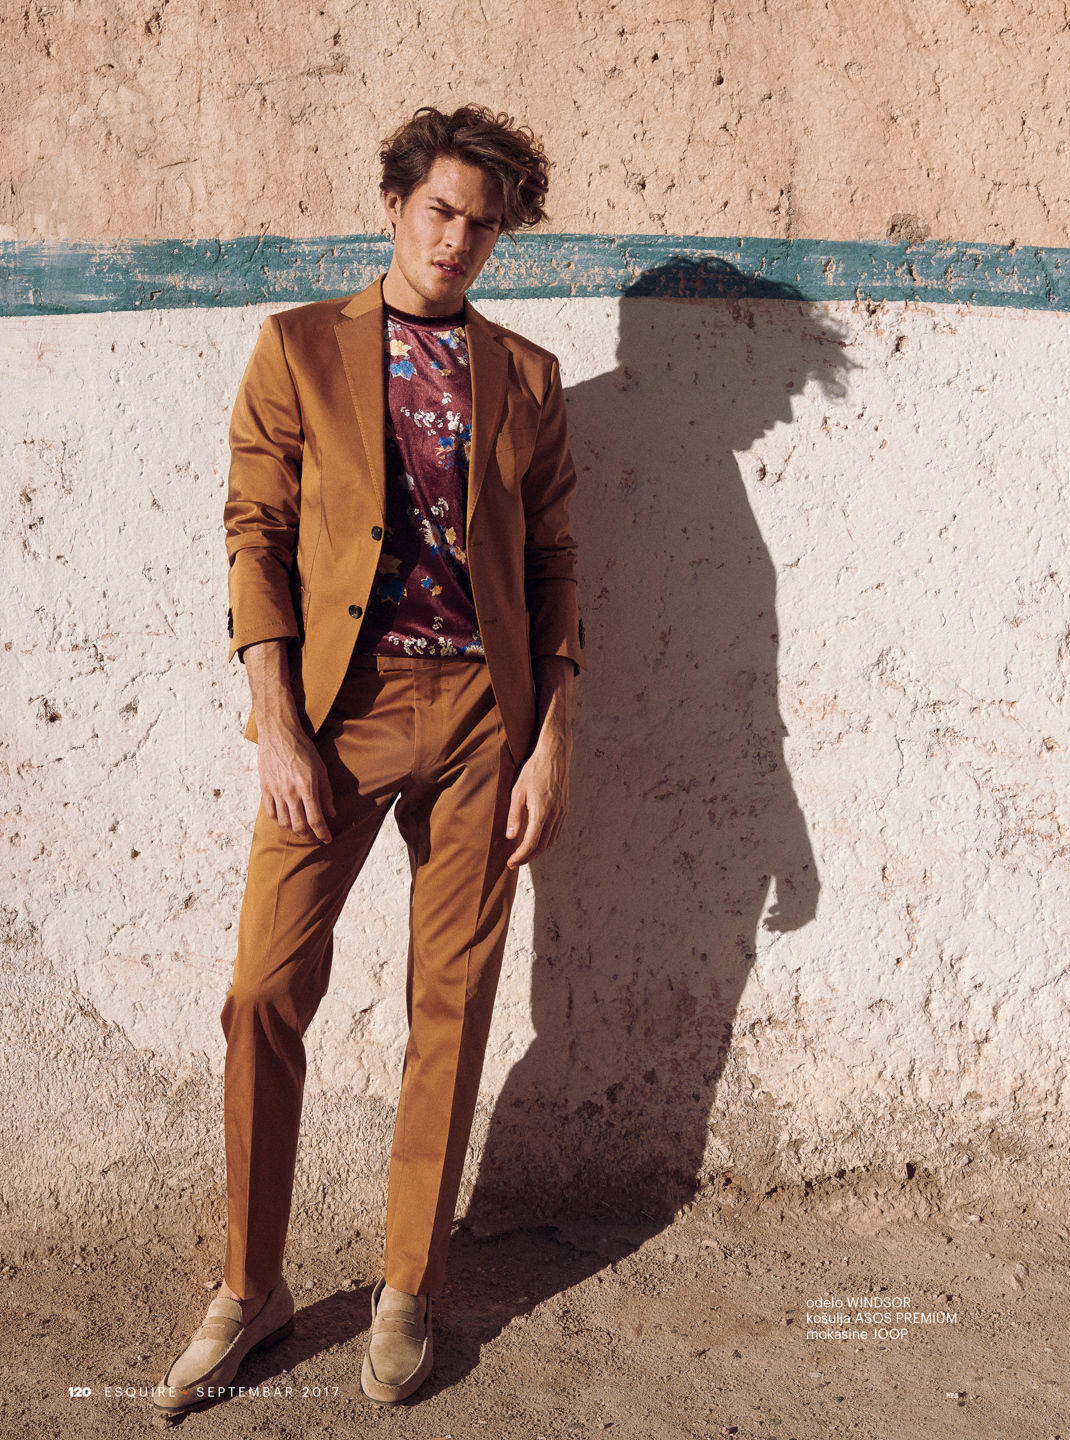 Desert Editorial with Model Ceasar Casier for Esquire Serbia by Photographer Stephan Glathe